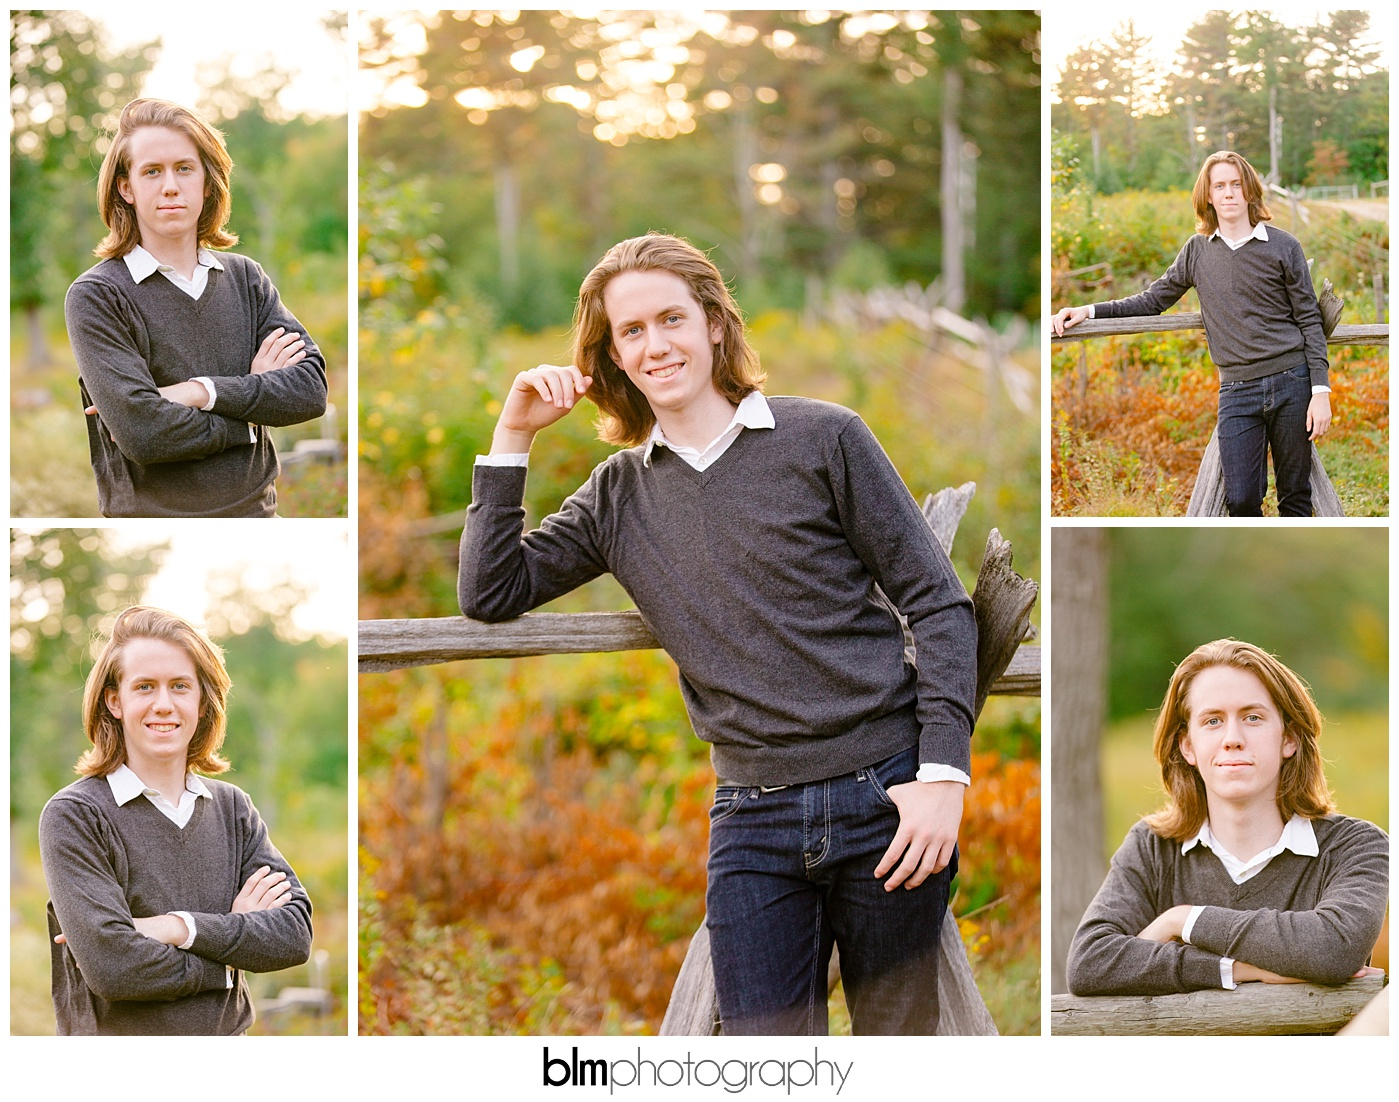 Ryan-Hoiriis_Senior-Portraits_092116-8481.jpg